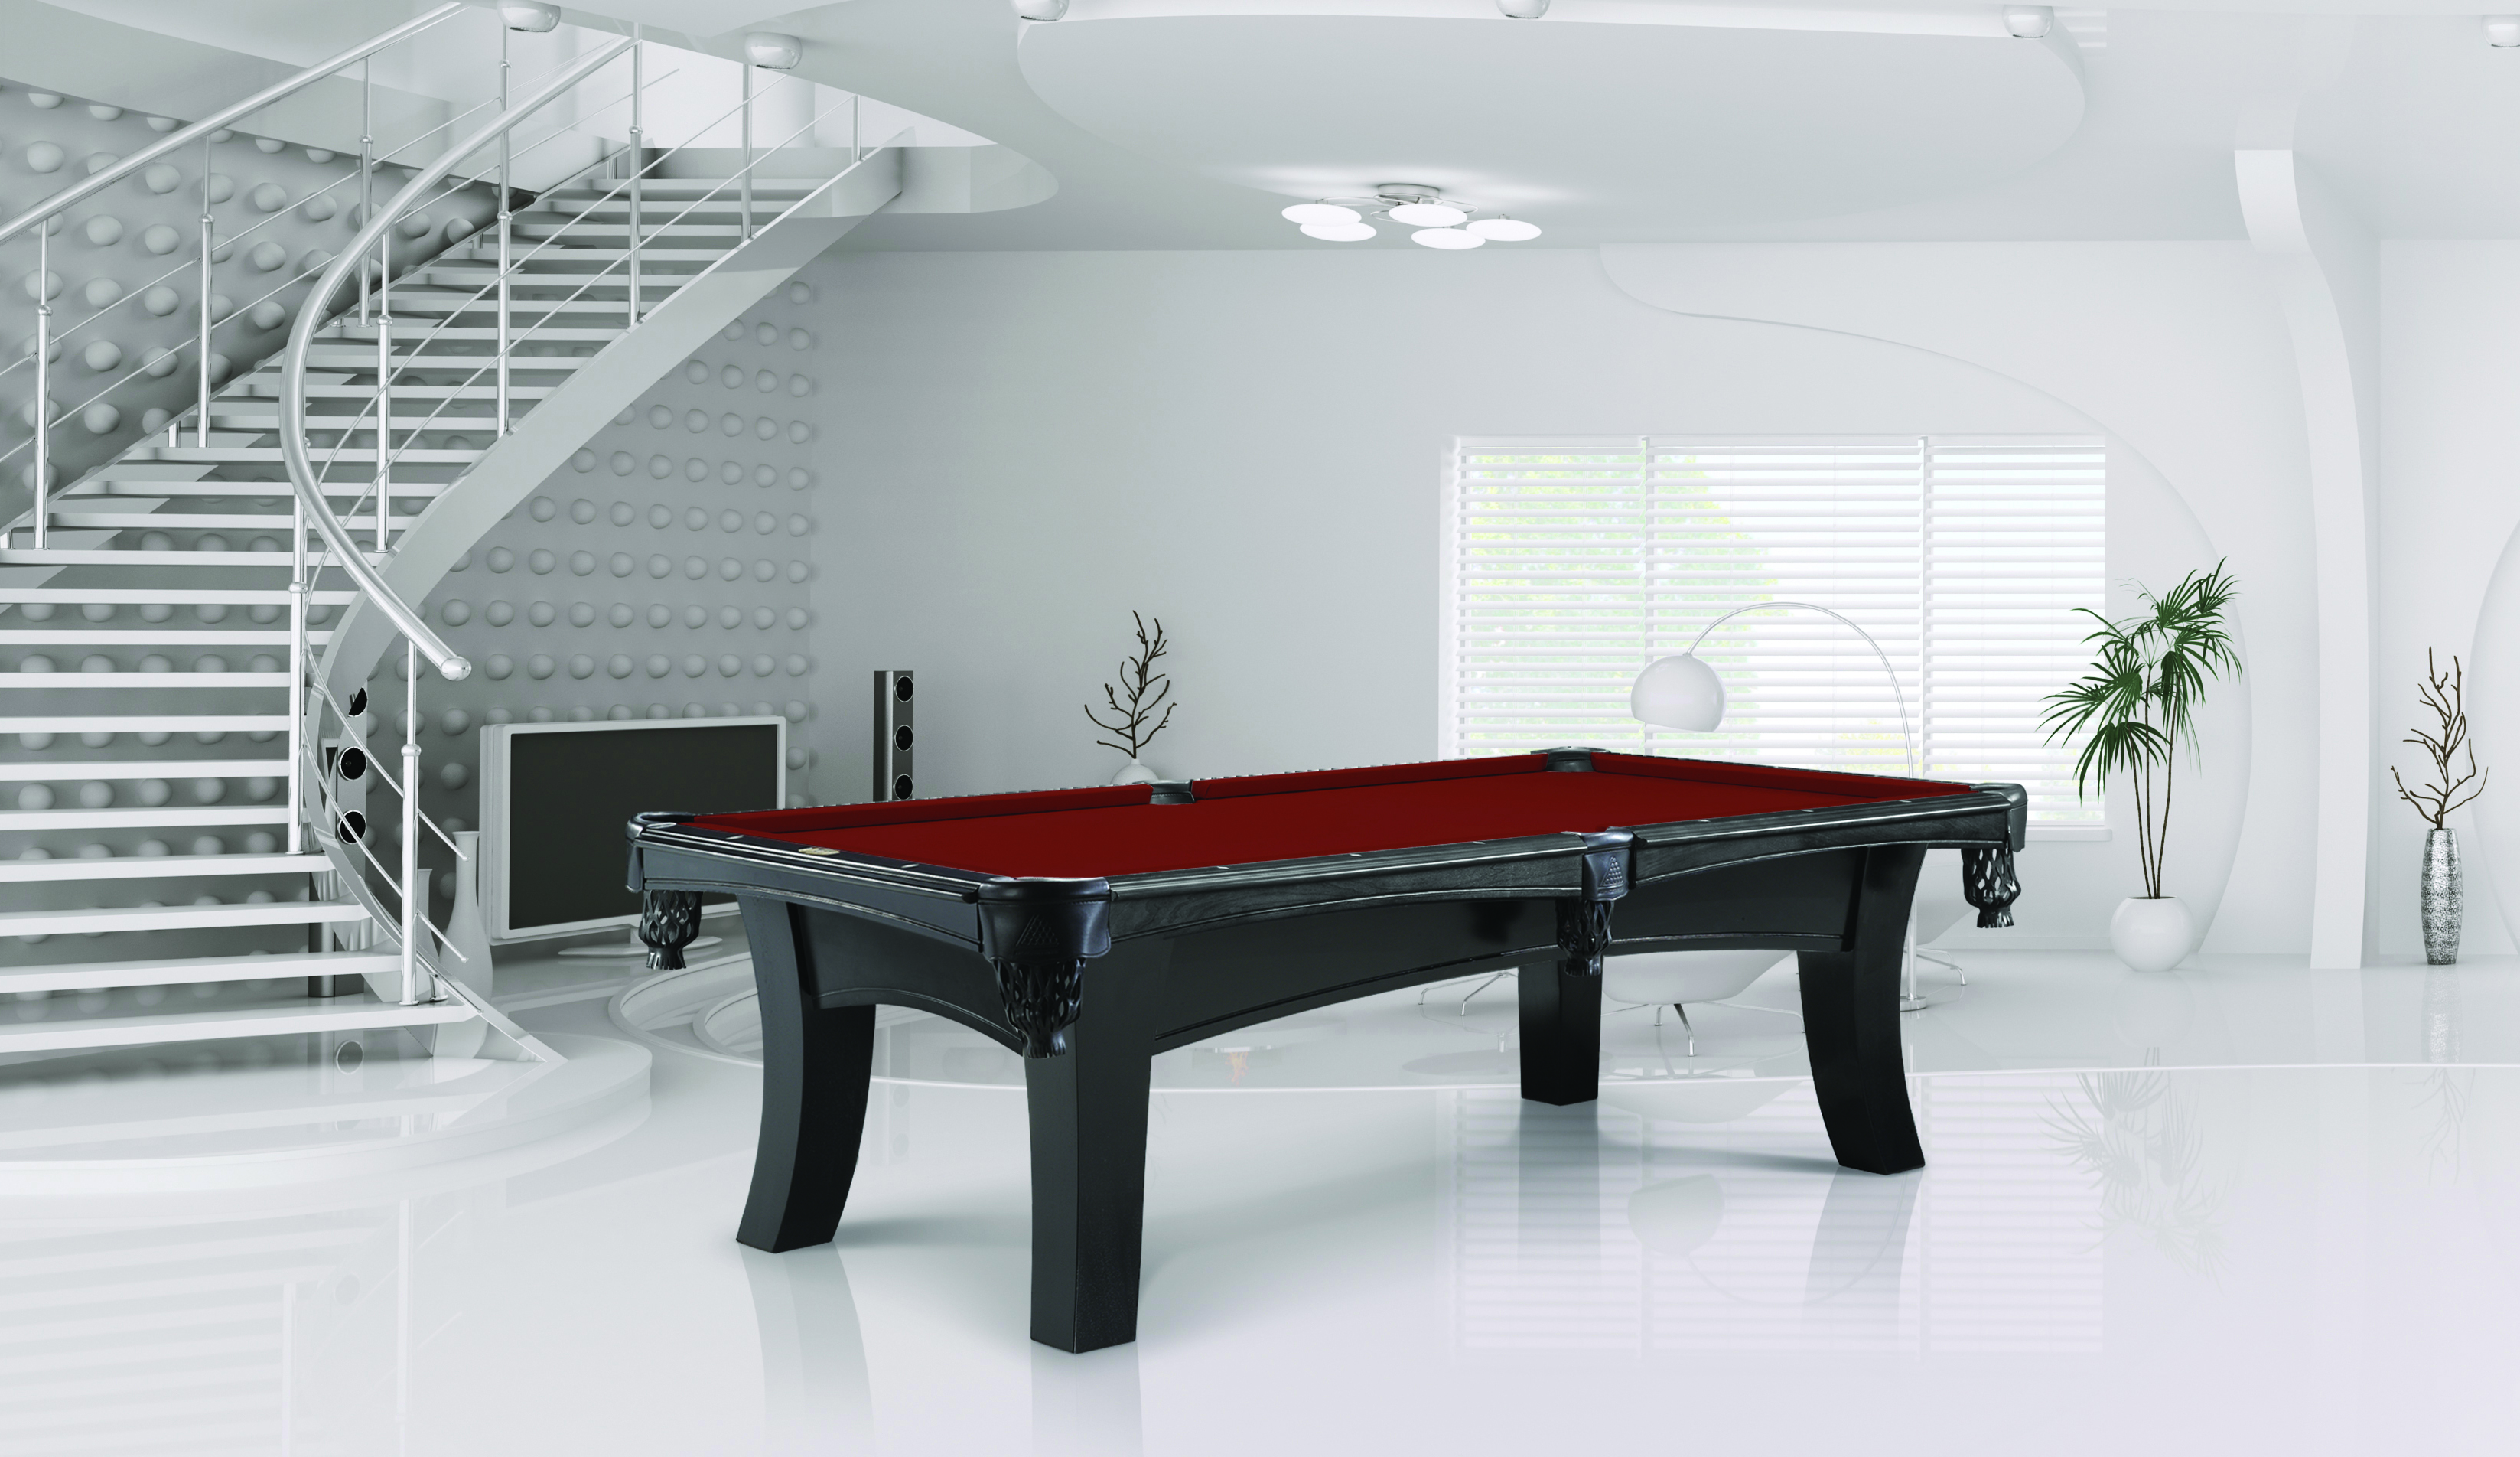 Legacy Ella Aurora Pool Spa And Billiard - How wide is a pool table